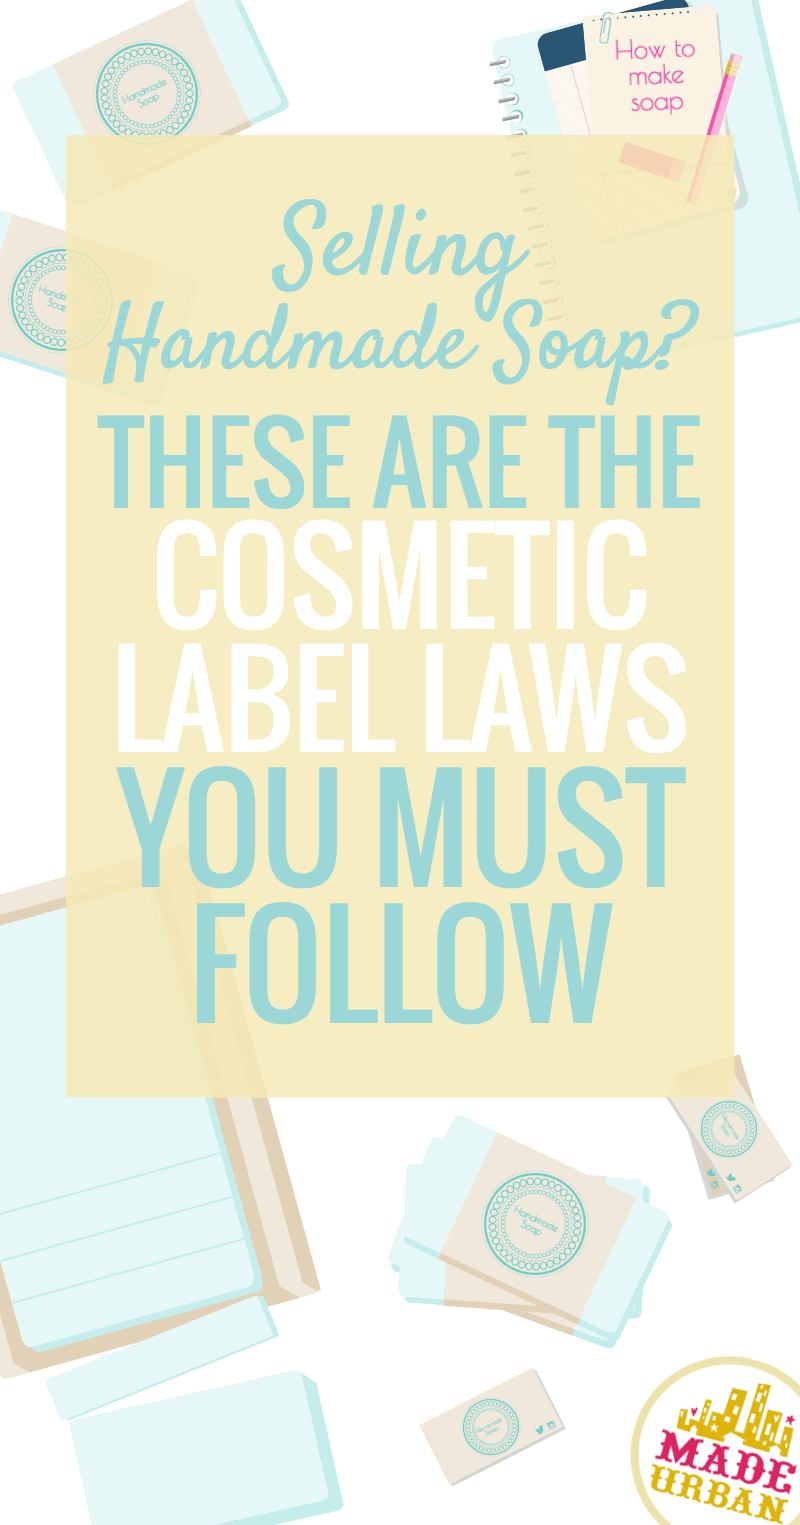 Laws for Selling Handmade Soap & Cosmetics